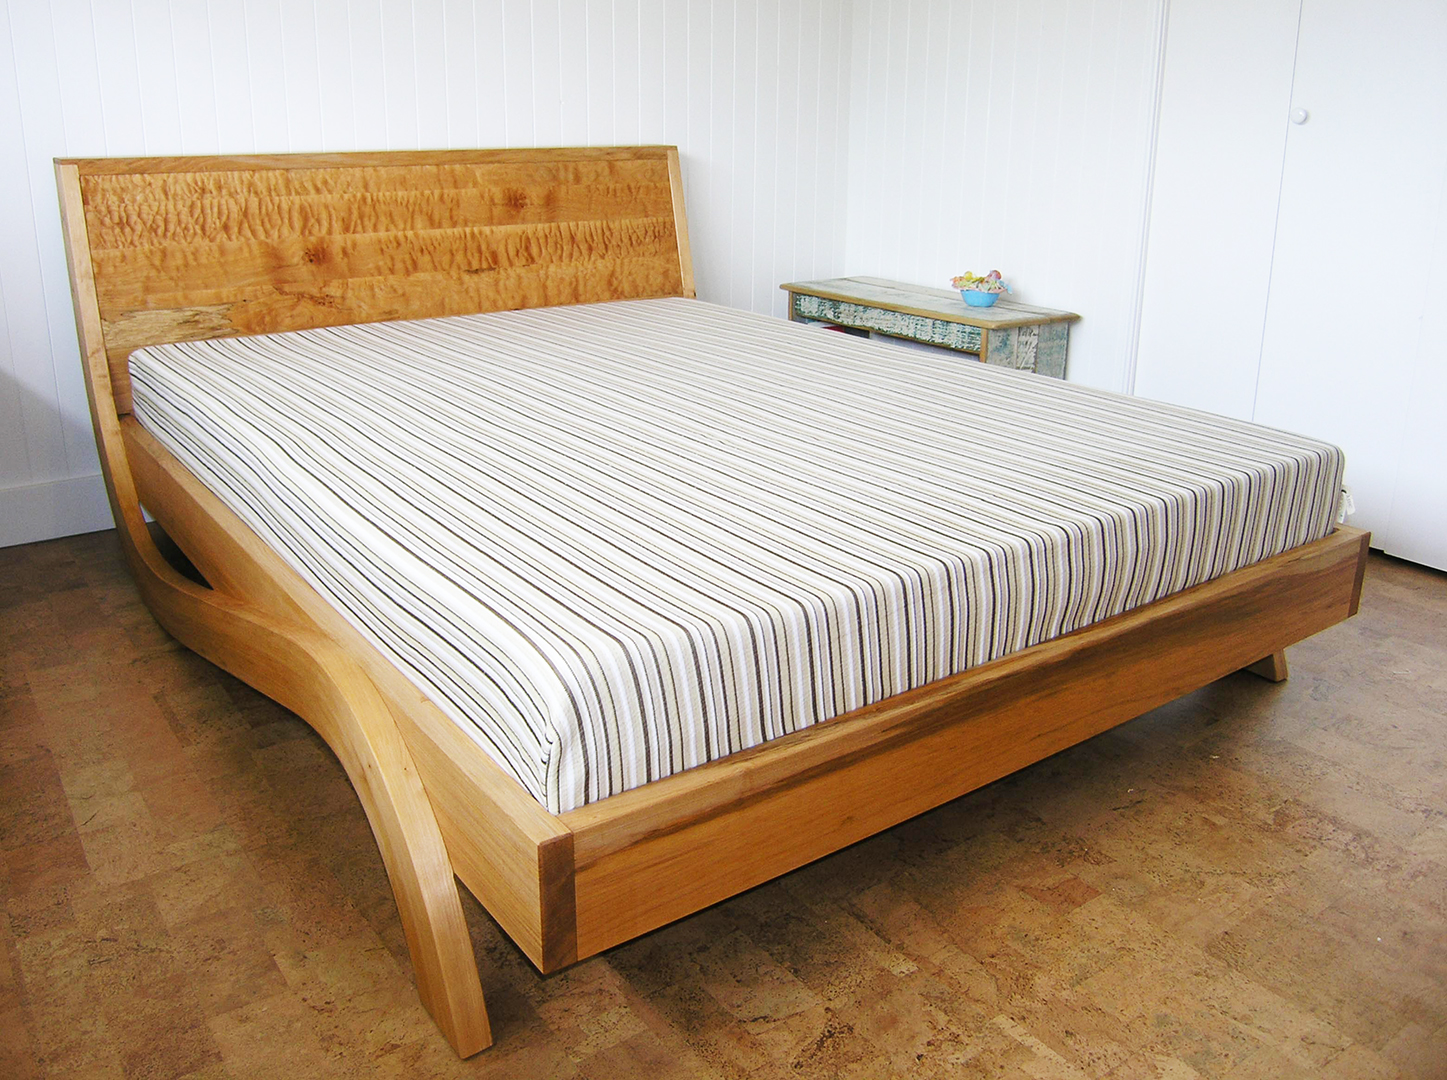 Antique bed frames vancouver brass bed frame 4 post bed for Beds vancouver